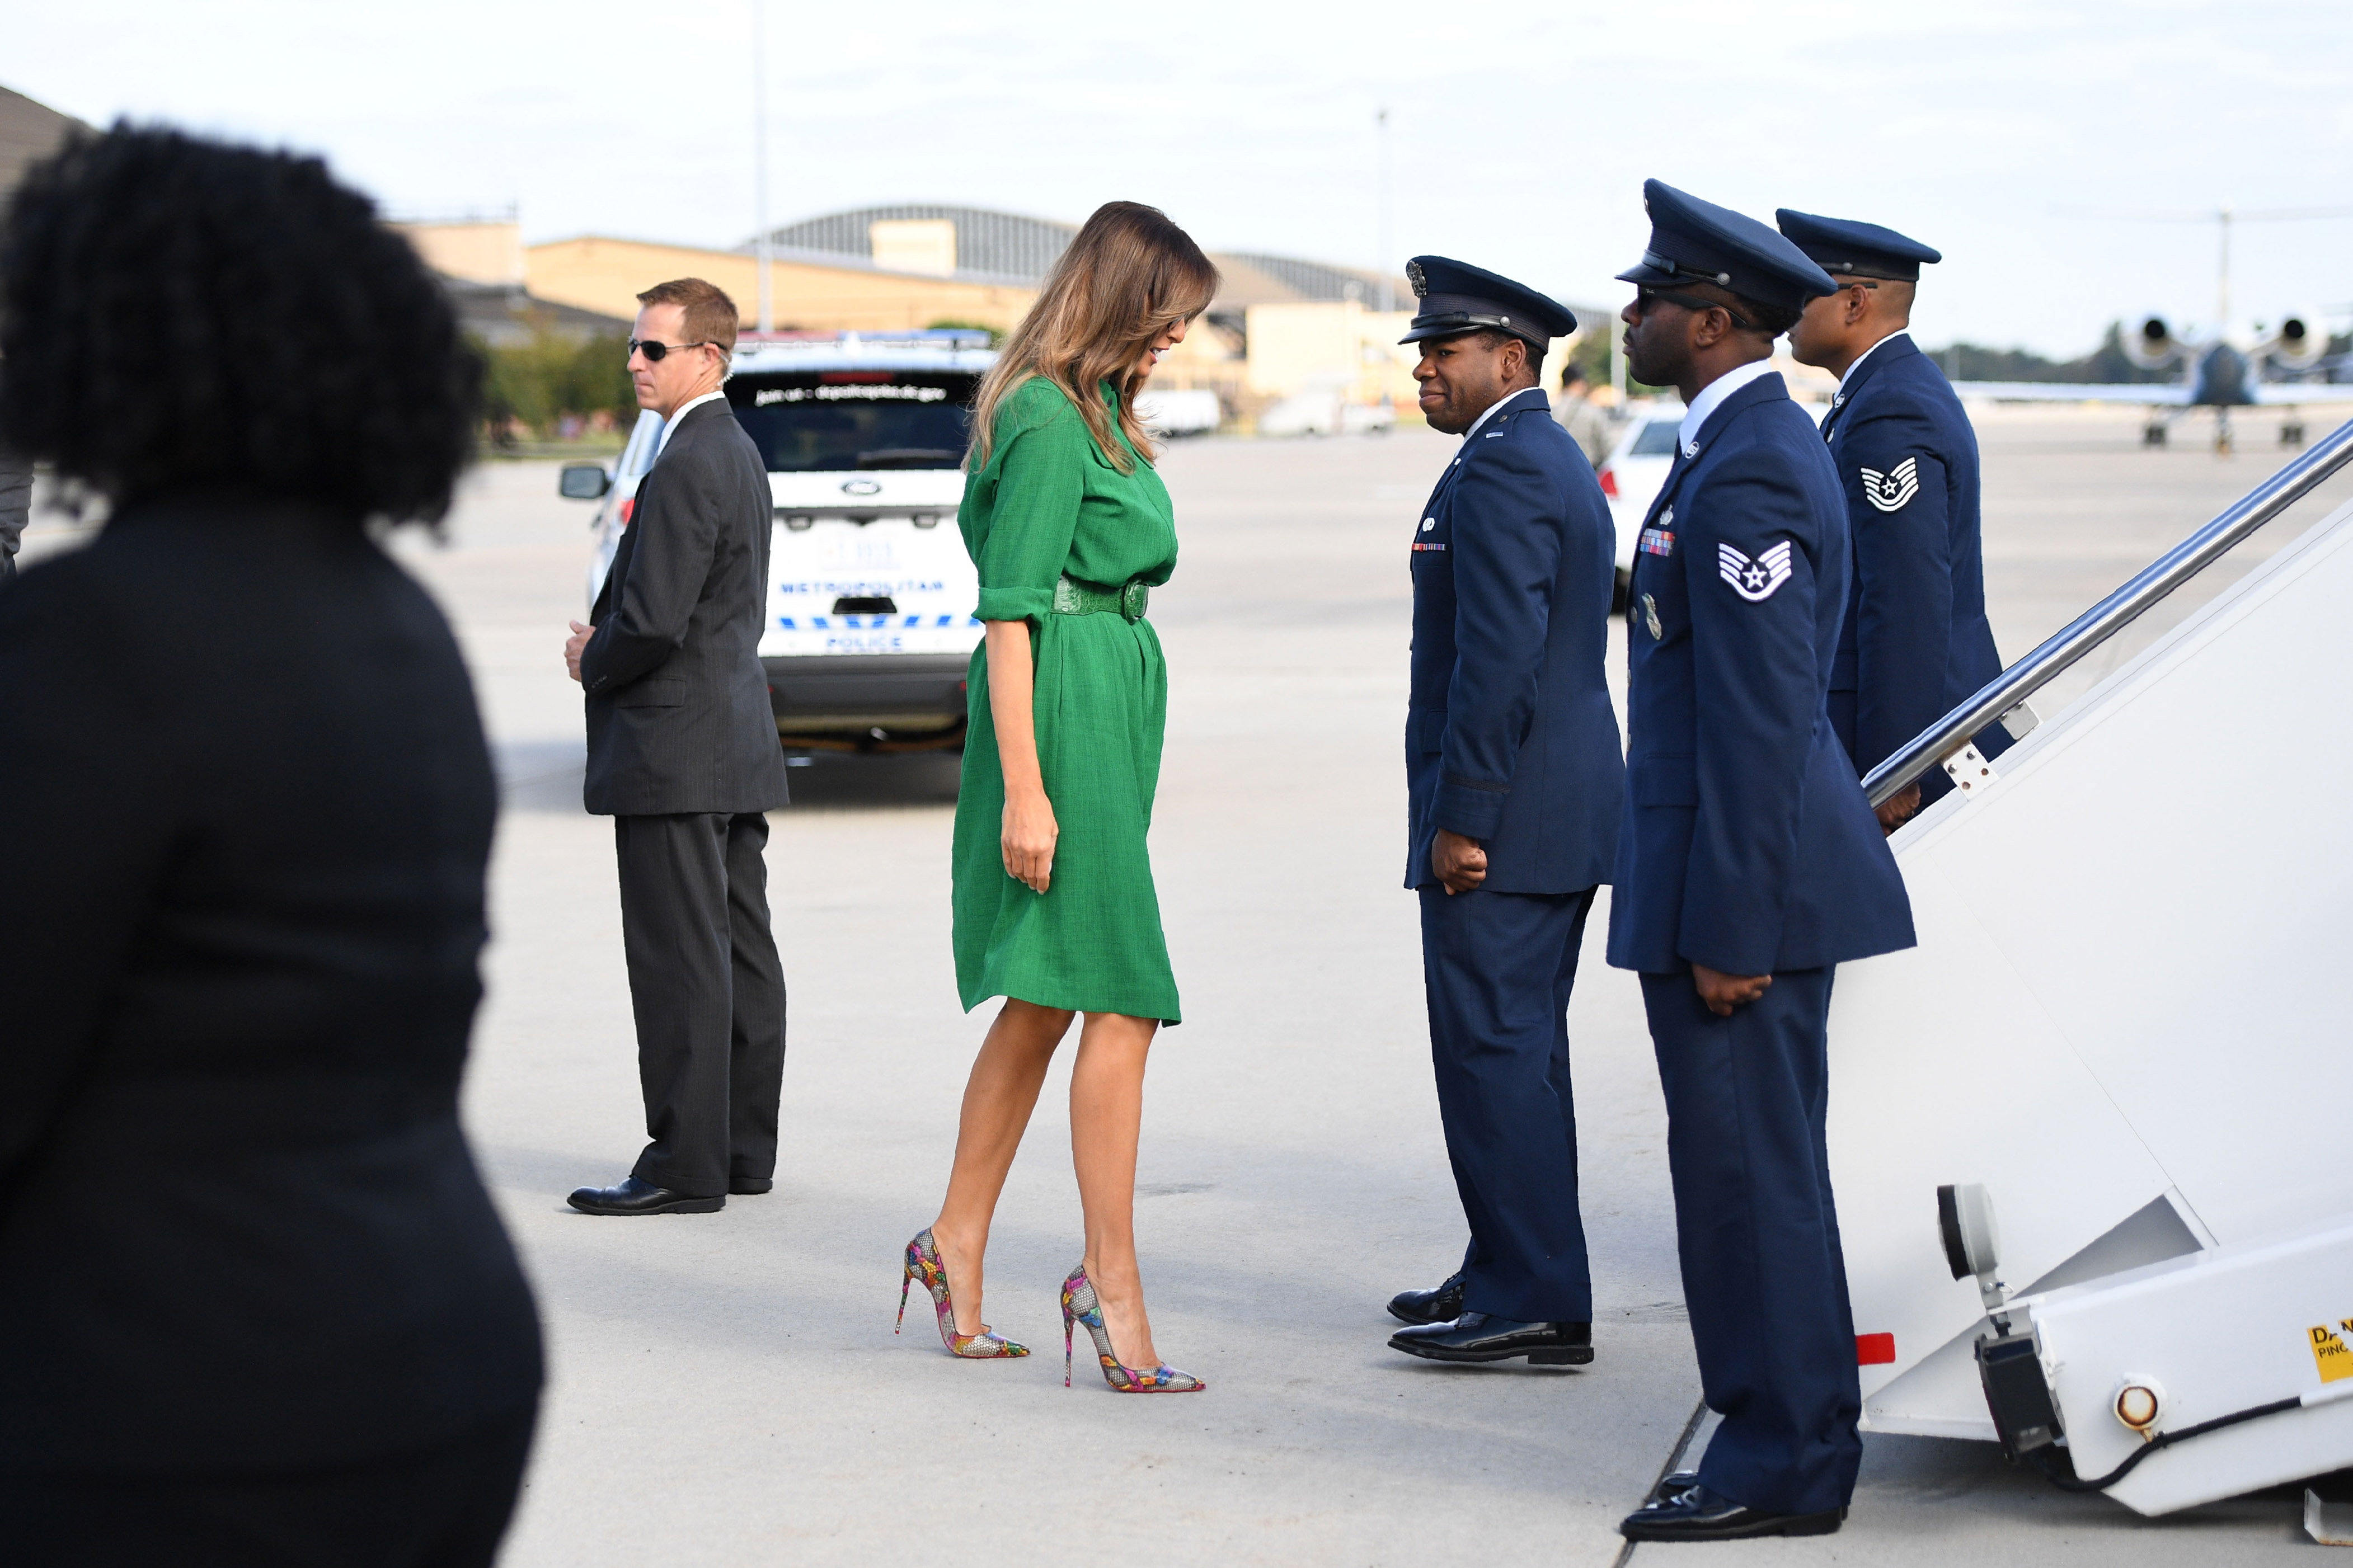 First lady Melania Trump (C) wearing a Cefinn Studio dress, (designer brand of Samantha Cameron, wife of former British Prime Minister David Cameron), prepares to board a plane at Joint Base Andrews near Washington, D.C. on Oct. 10, 2017.